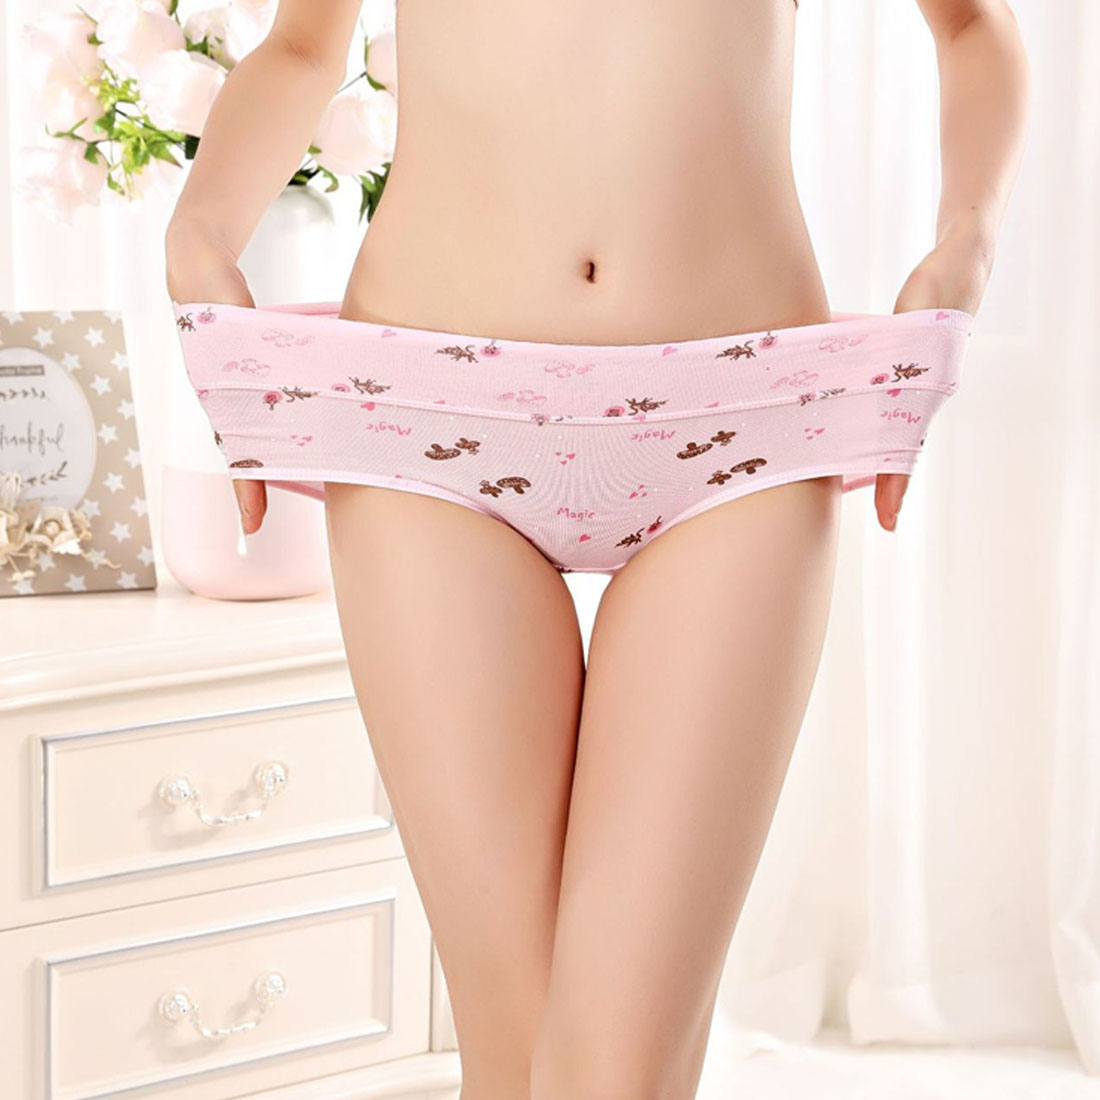 Women's Panties Pattern Cotton Underwear 2019 New Hot Gril Briefs Lingerie Cartoon Female Panty Woman Comfortable Cartoon Briefs